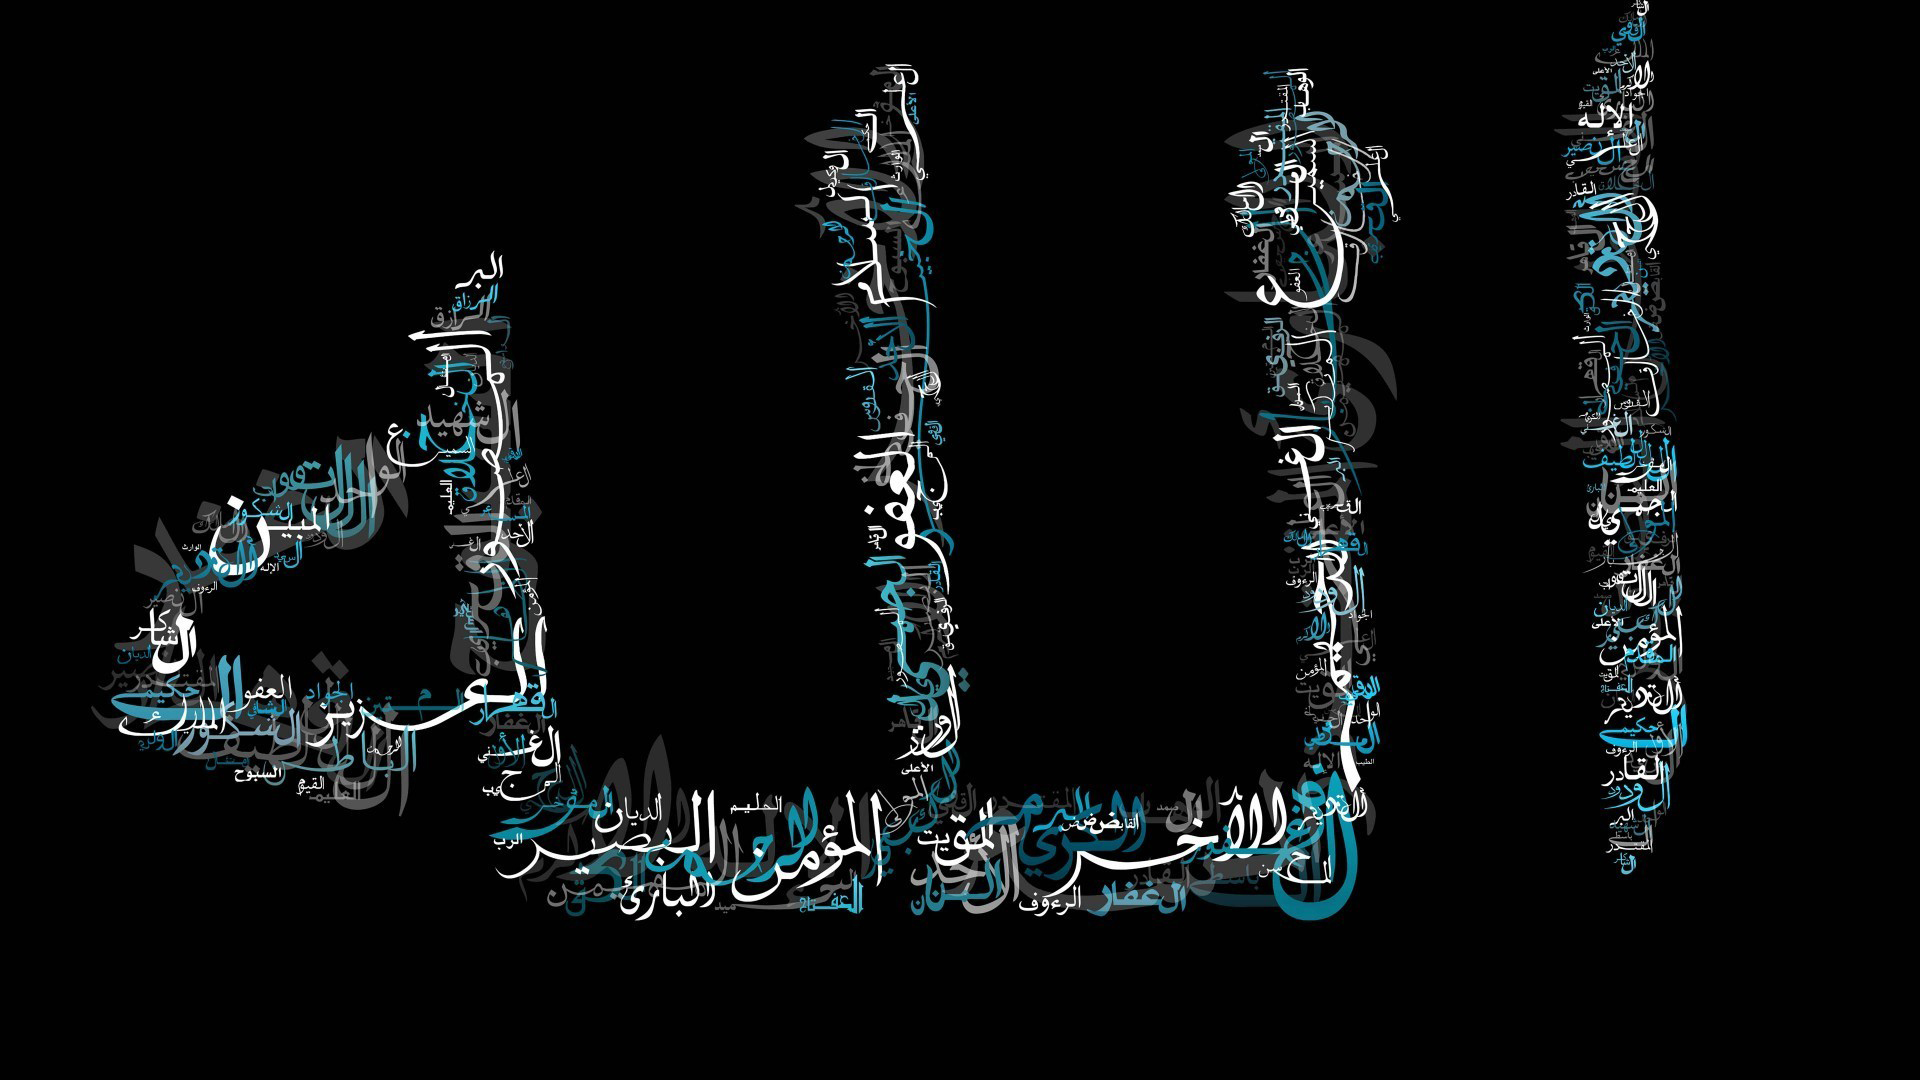 Allah Wallpapers 3d Download Allah Wallpapers Pictures Images